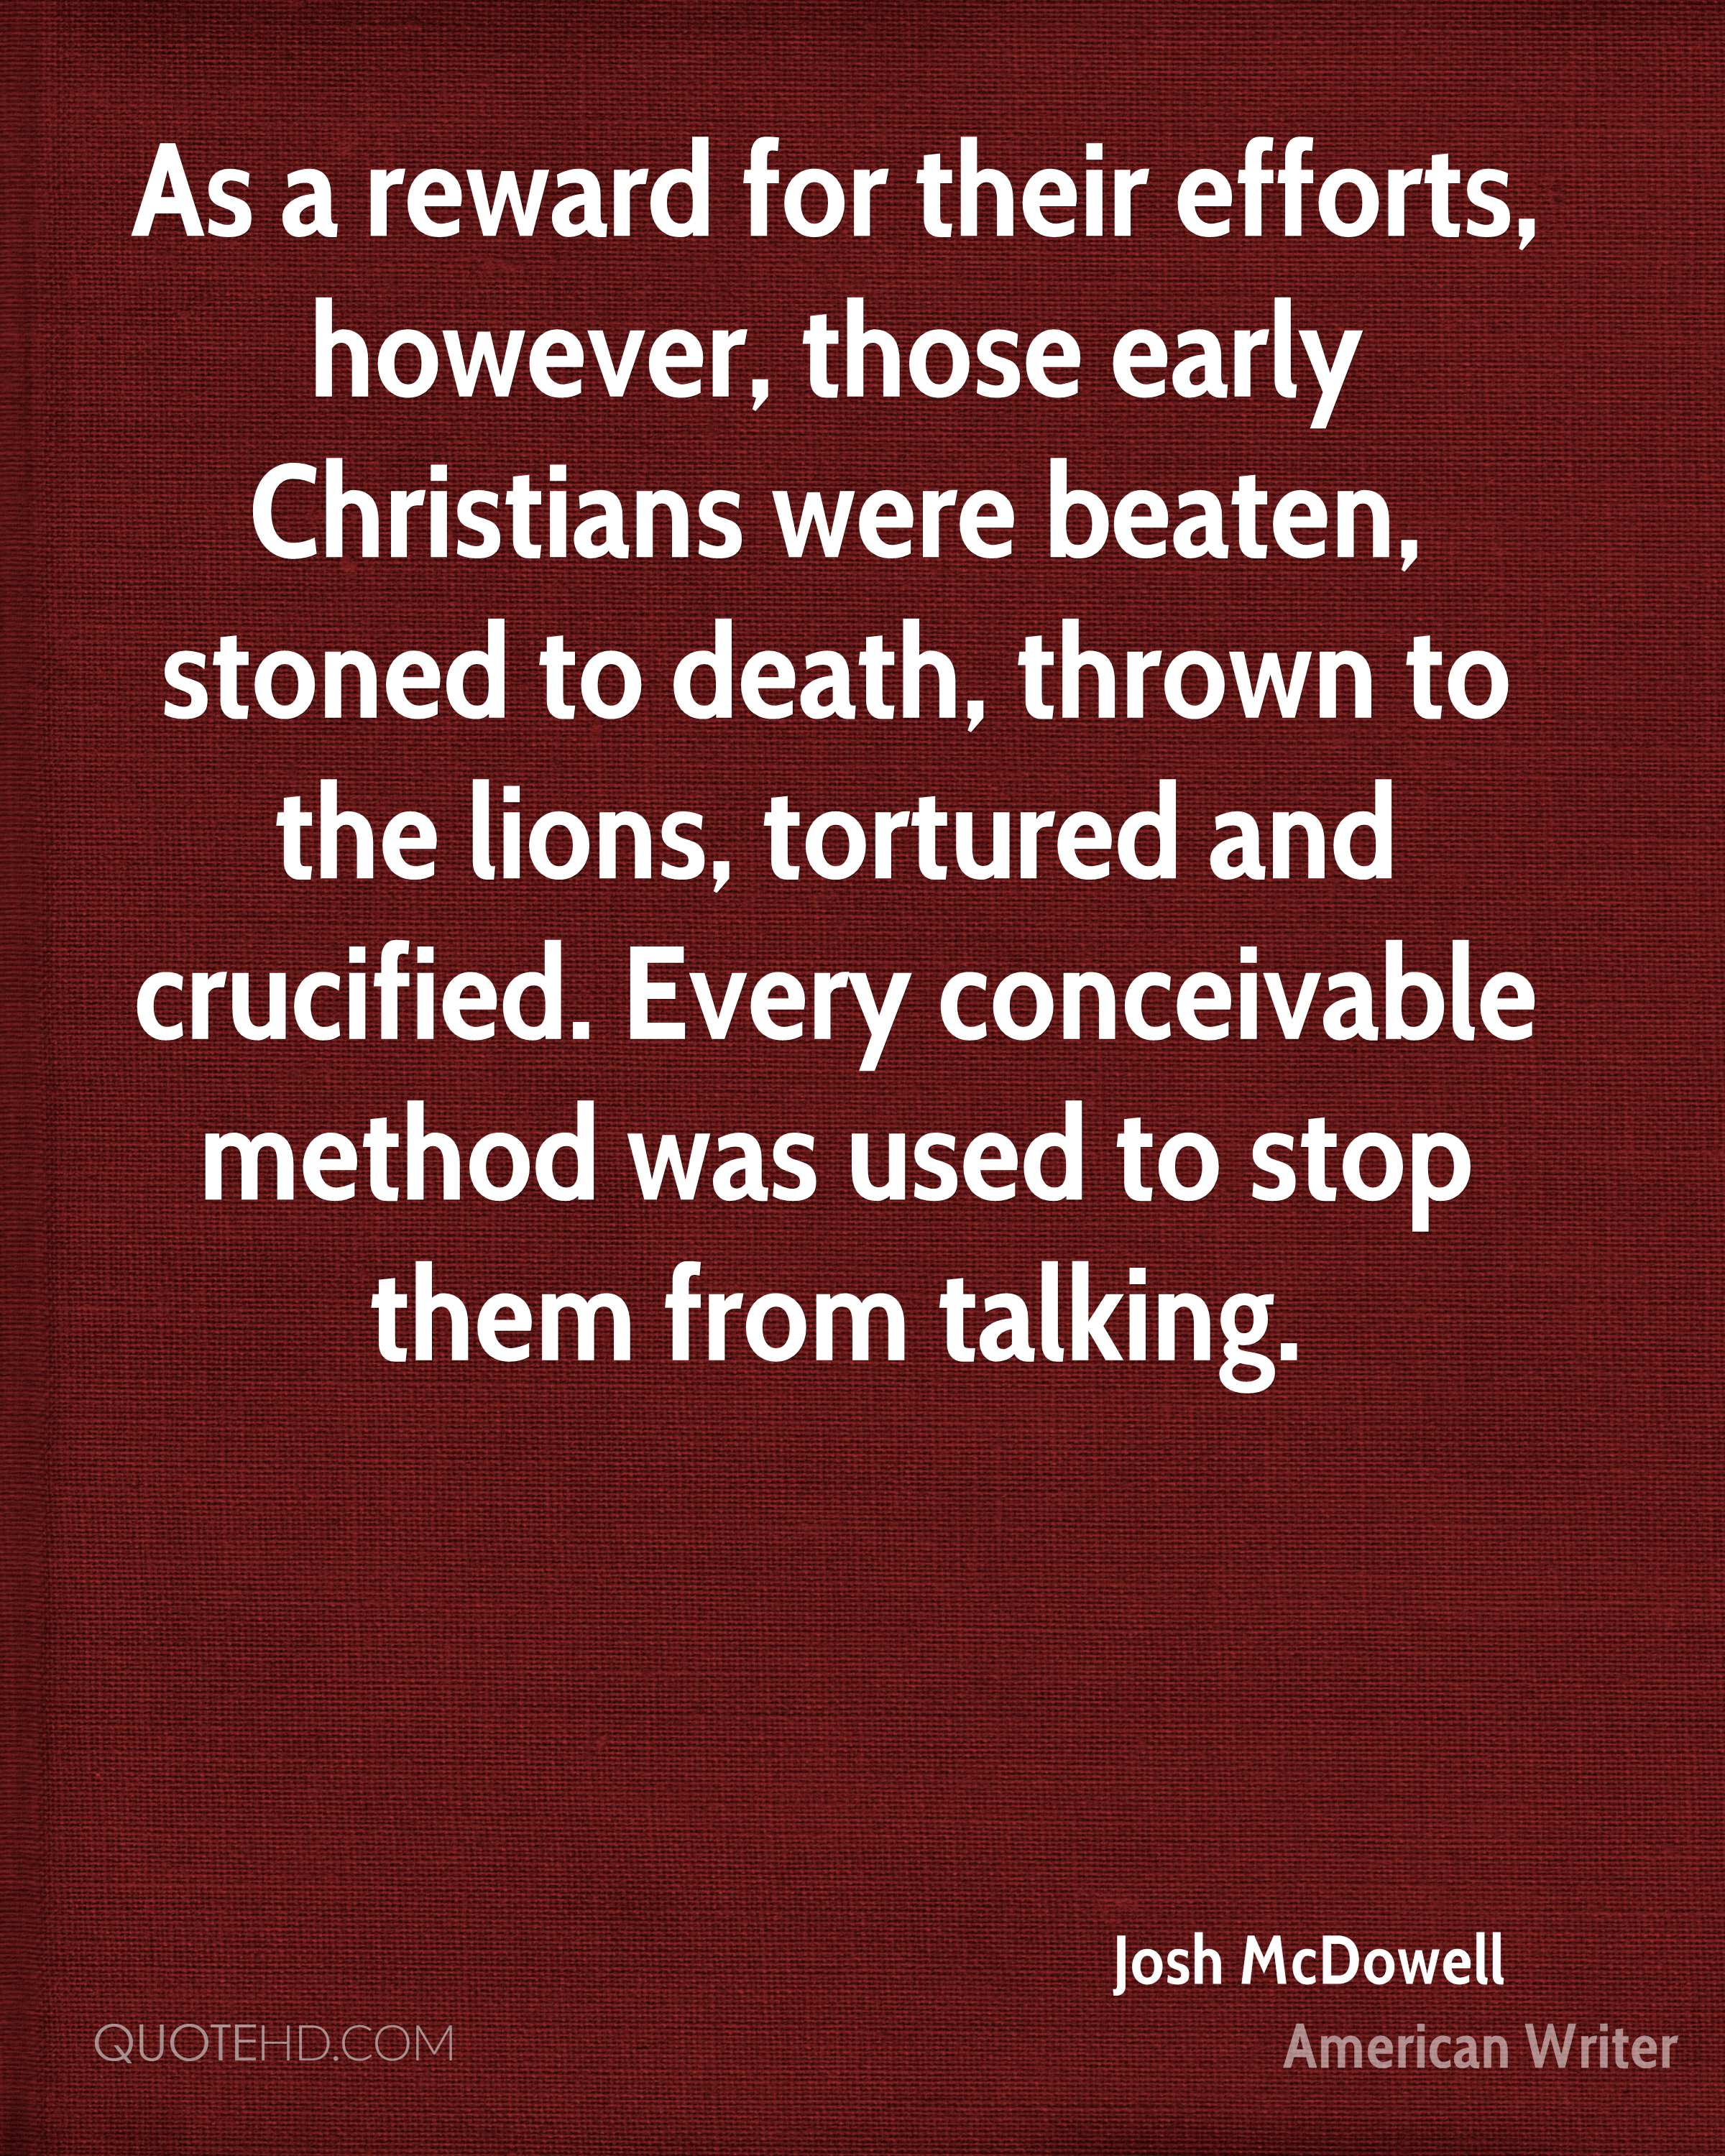 As a reward for their efforts, however, those early Christians were beaten, stoned to death, thrown to the lions, tortured and crucified. Every conceivable method was used to stop them from talking.